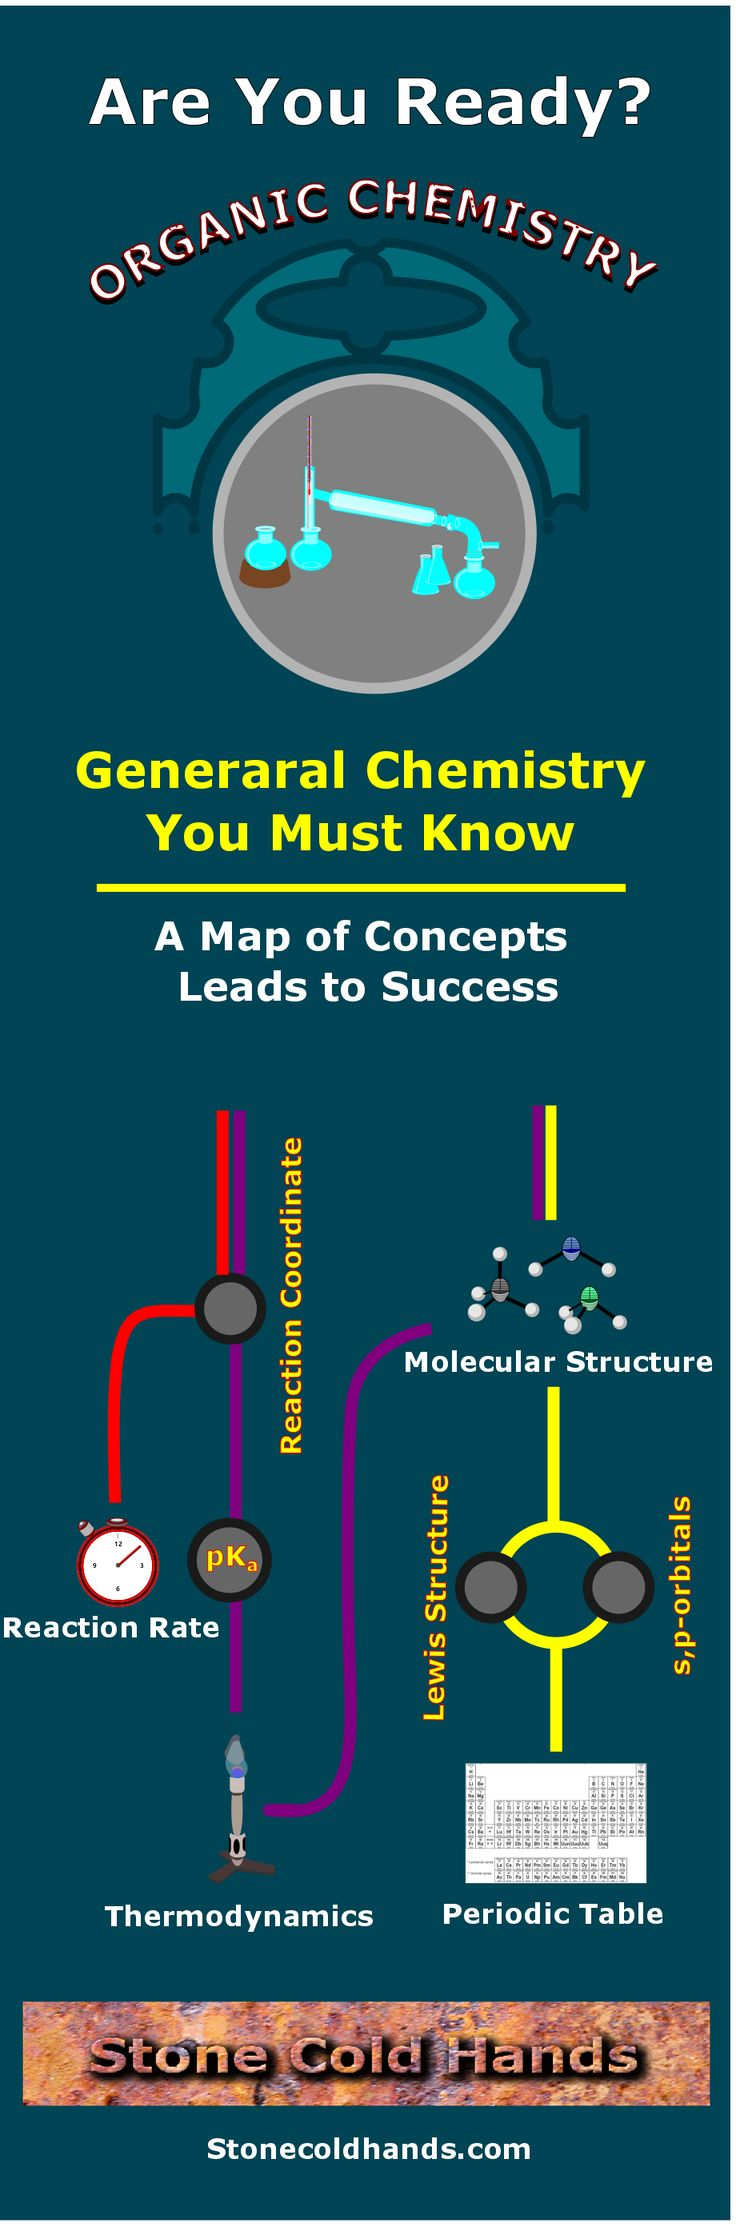 What you need to know before you begin organic chemistry is what could make or break you.